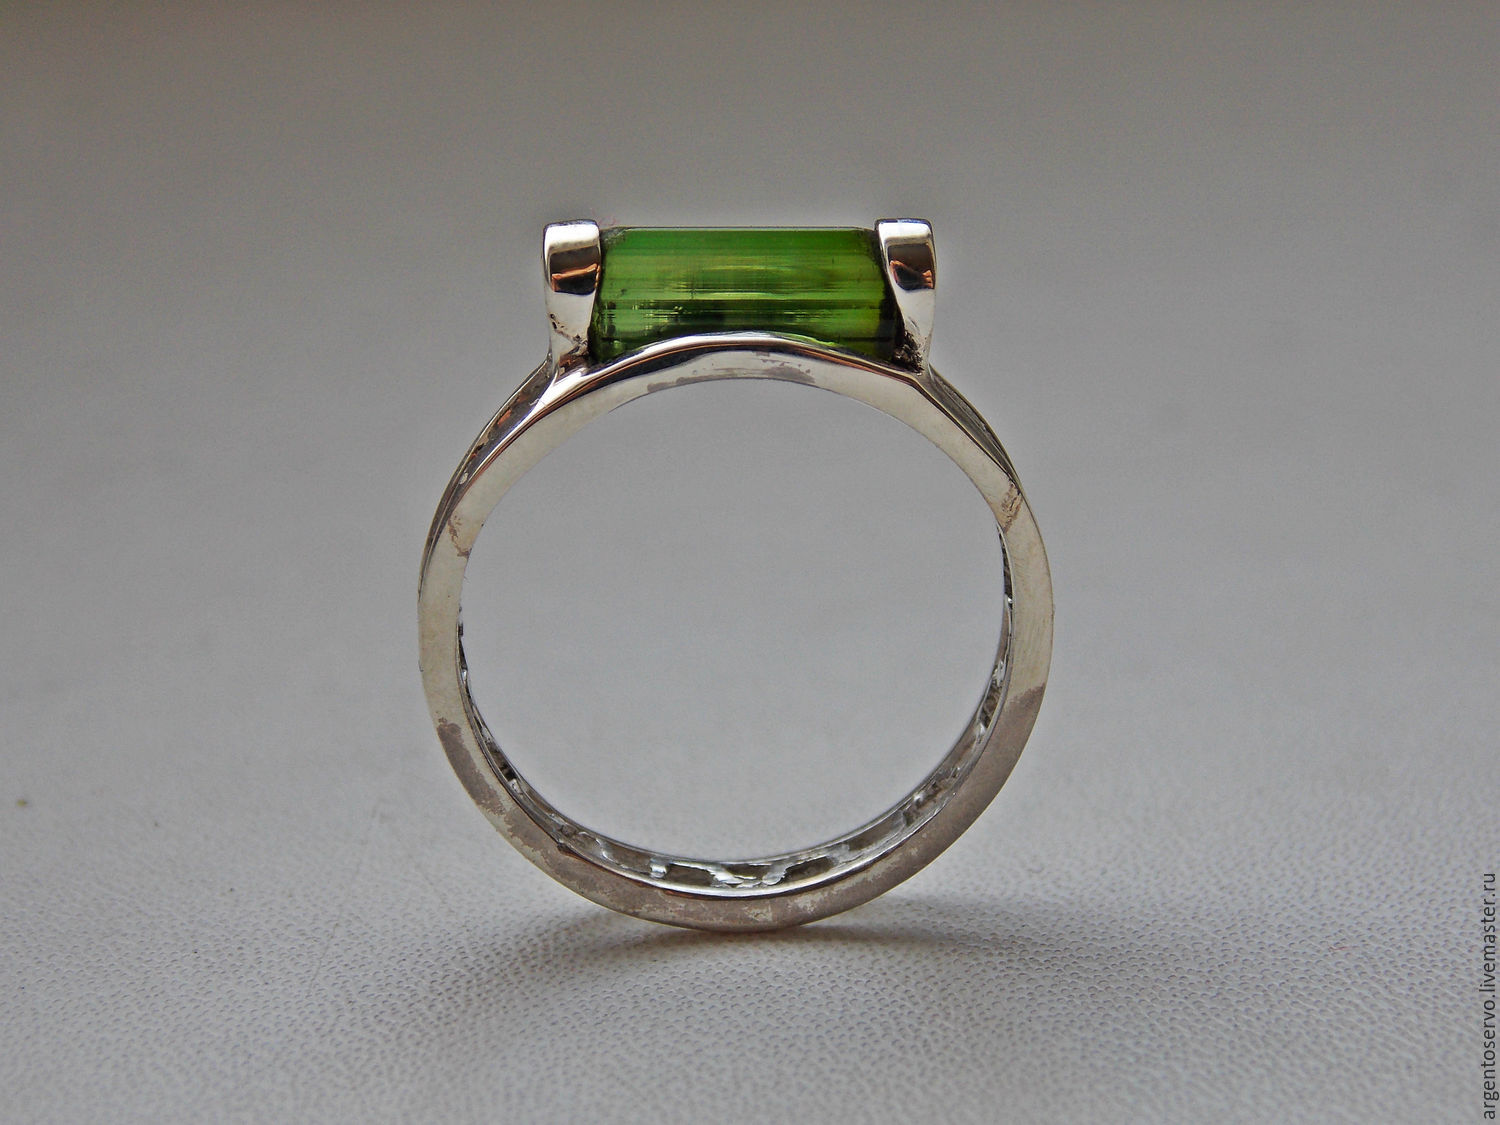 Ring with green tourmaline in silver `green light beam